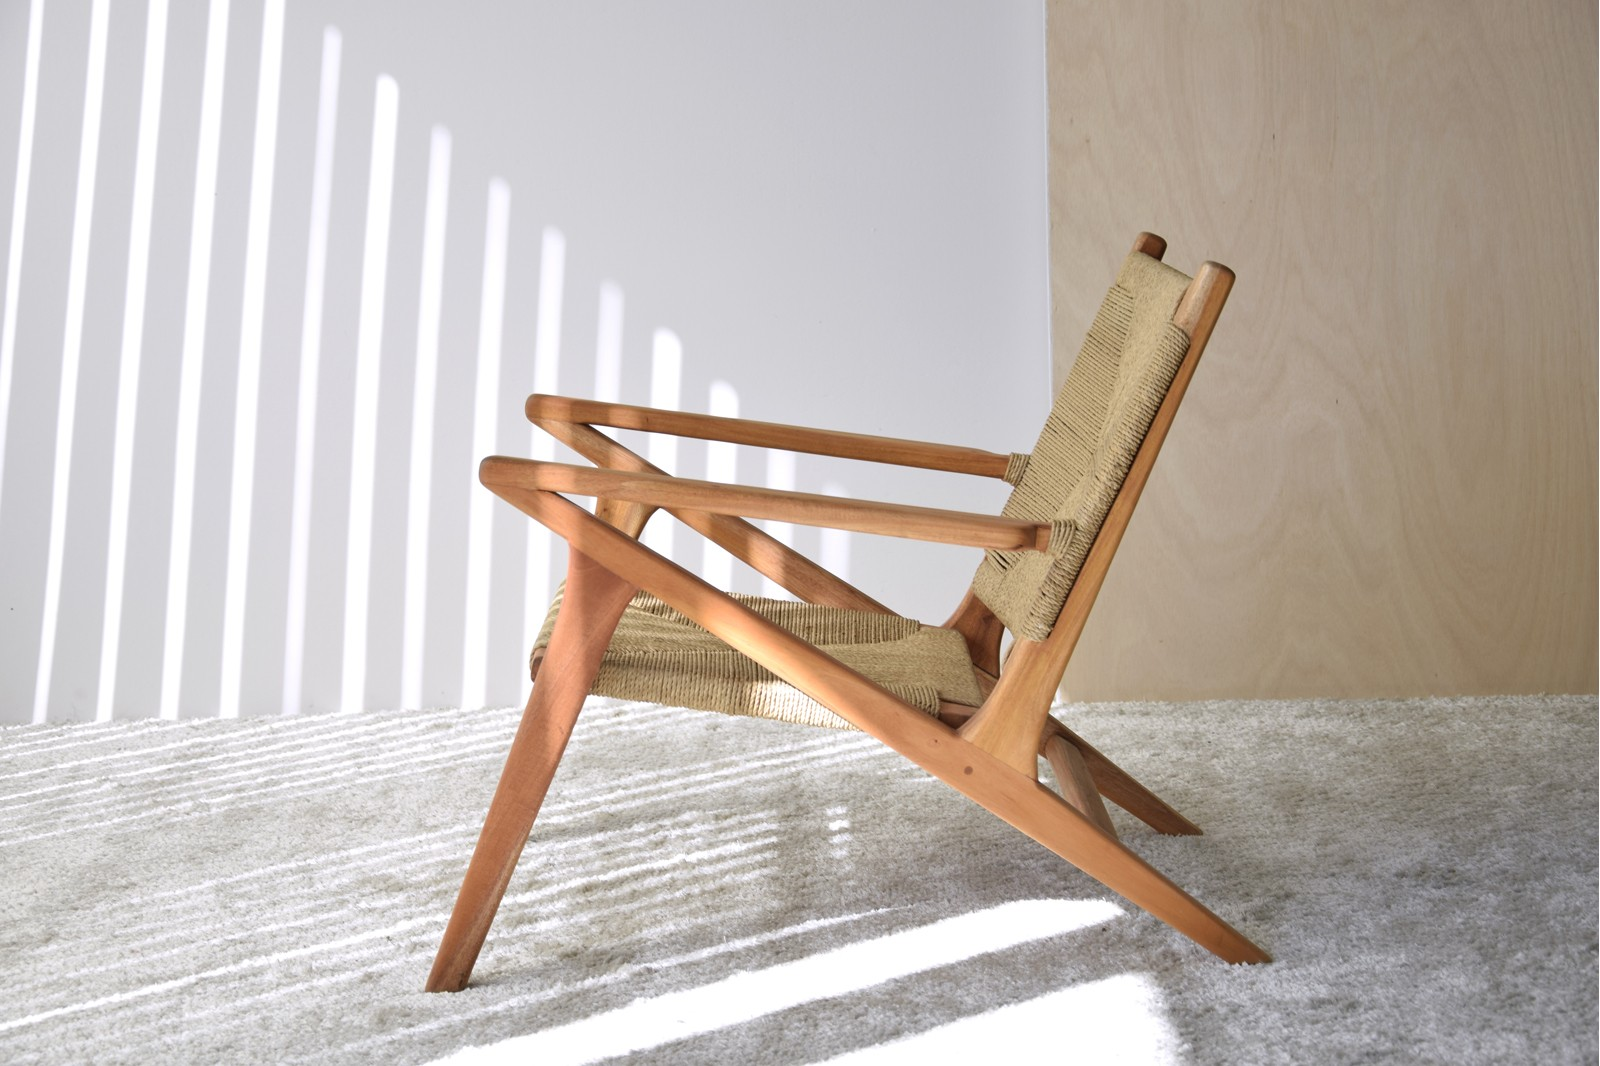 MONTY CHAIR. WOOD AND NATURAL ROPE